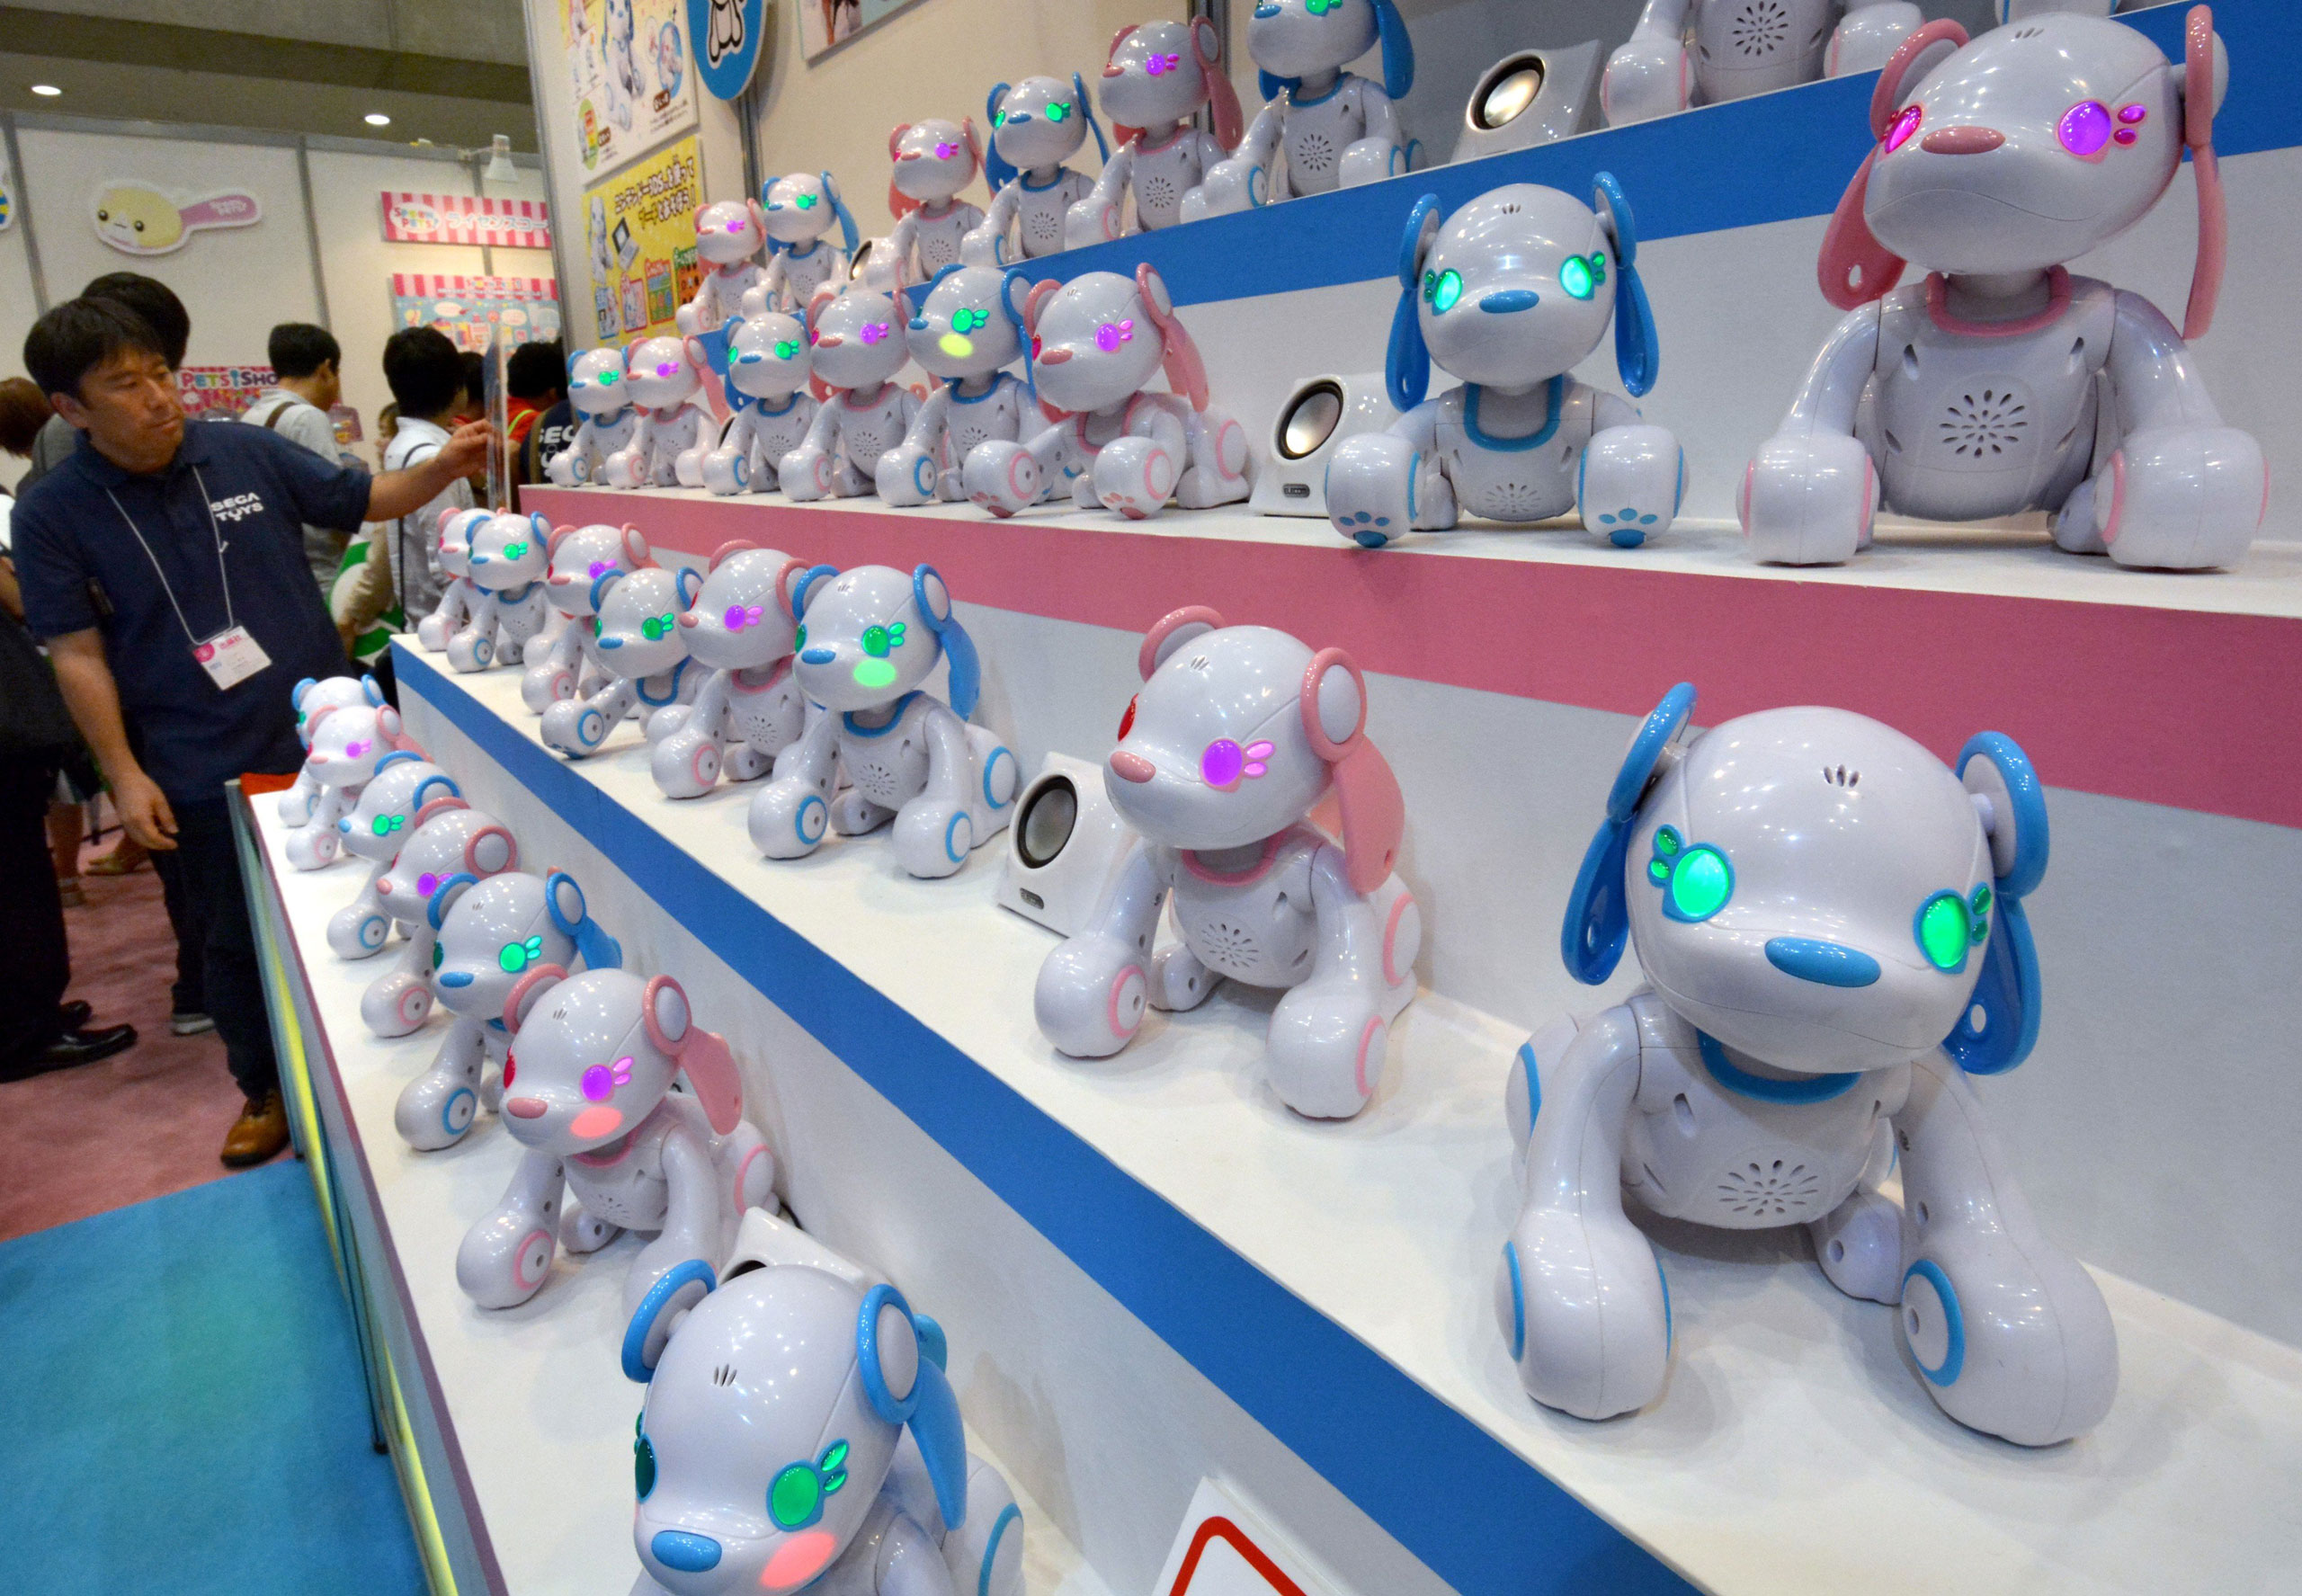 Poochi, a robotic dog, can have a conversation when using Nintendo's portable video game console '3DS'.